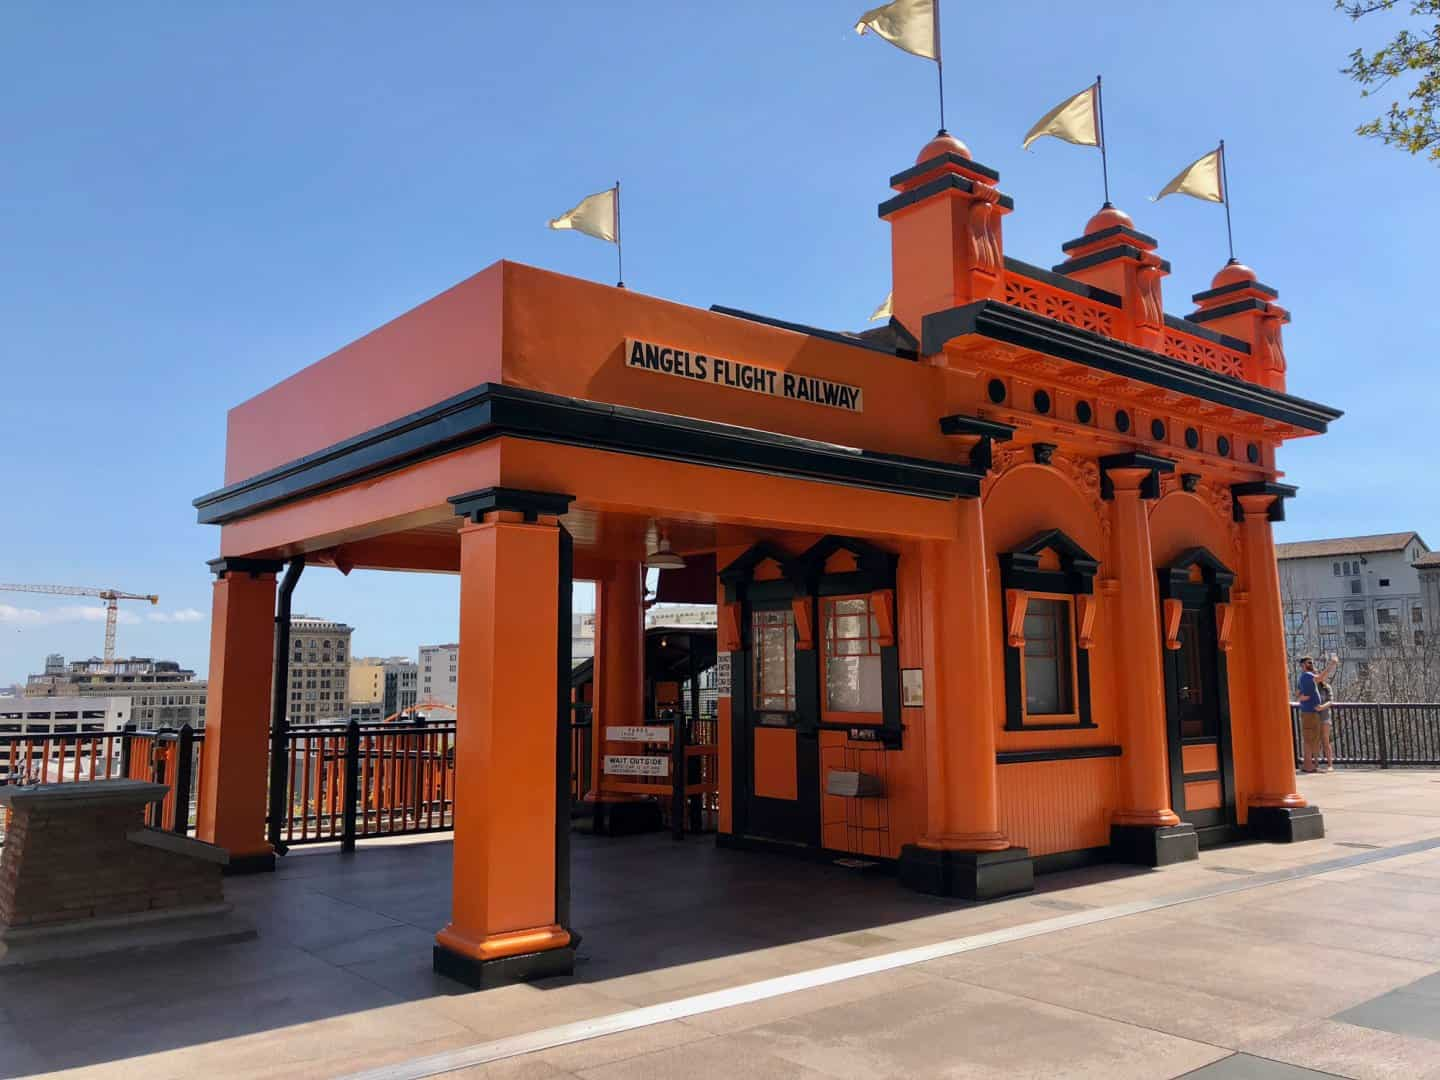 The entrance to Angels Flight Railway, Los Angeles